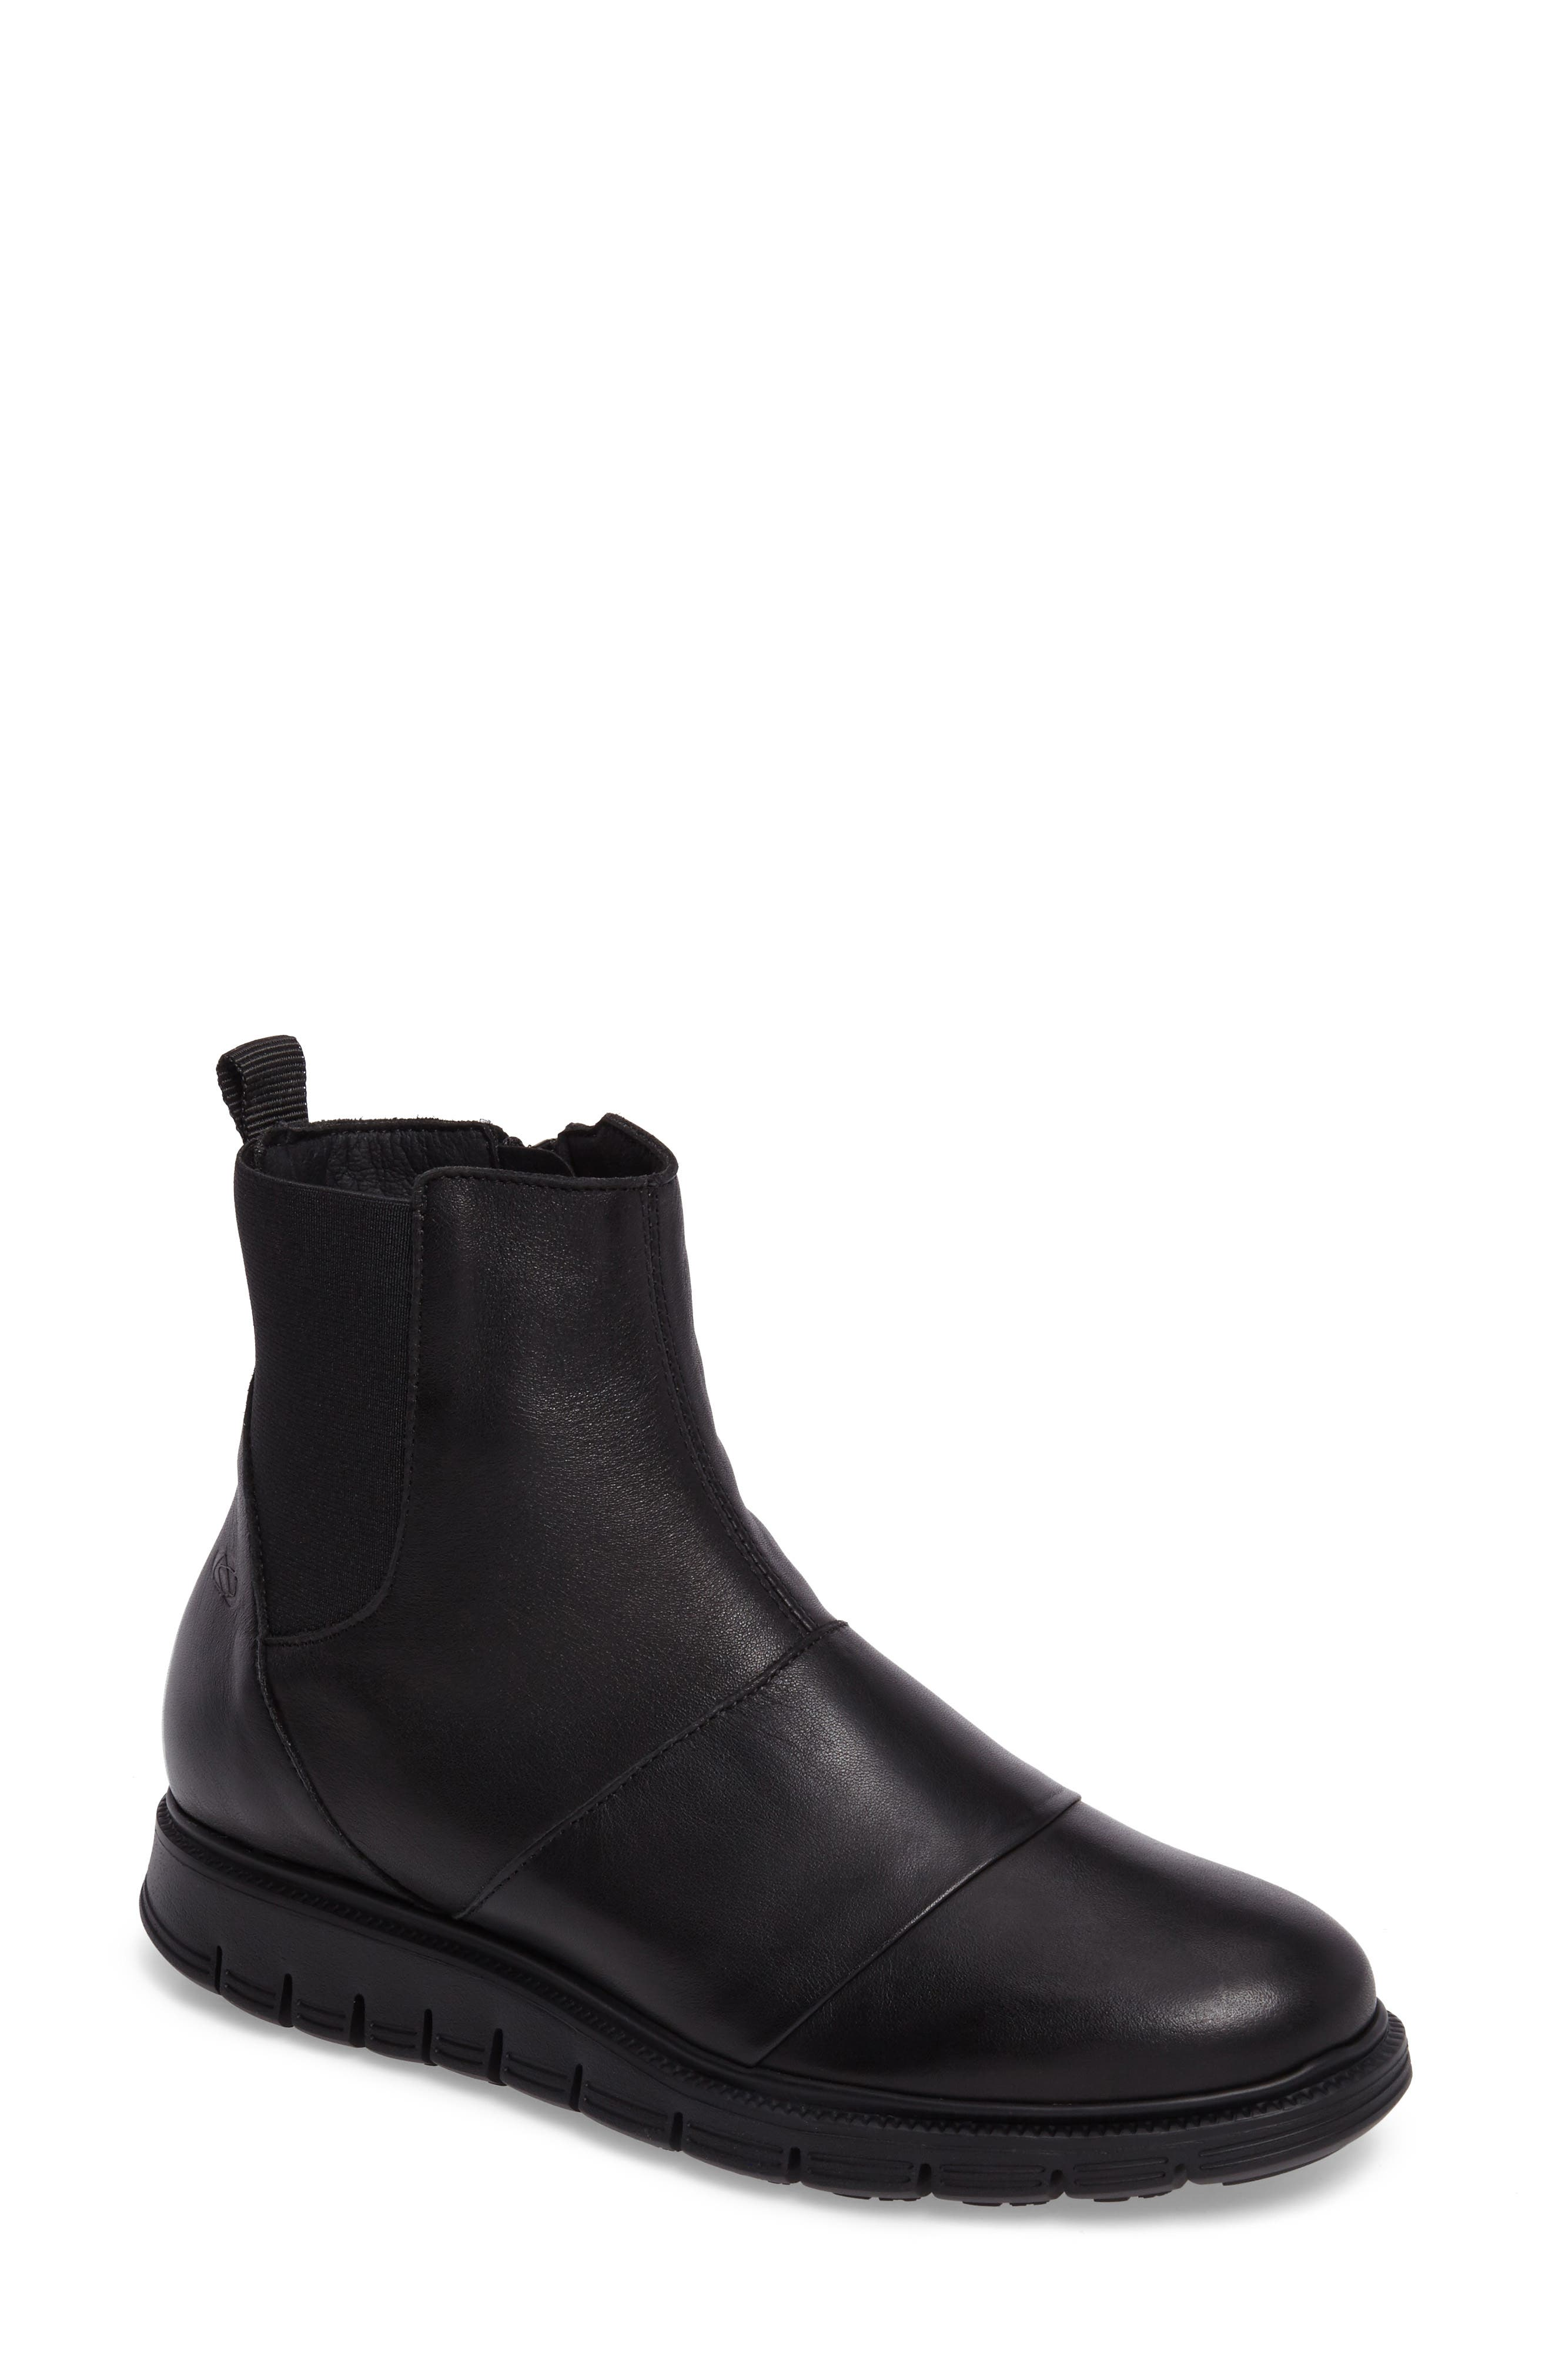 Gish Water-Resistant Bootie,                         Main,                         color, BLACK LEATHER